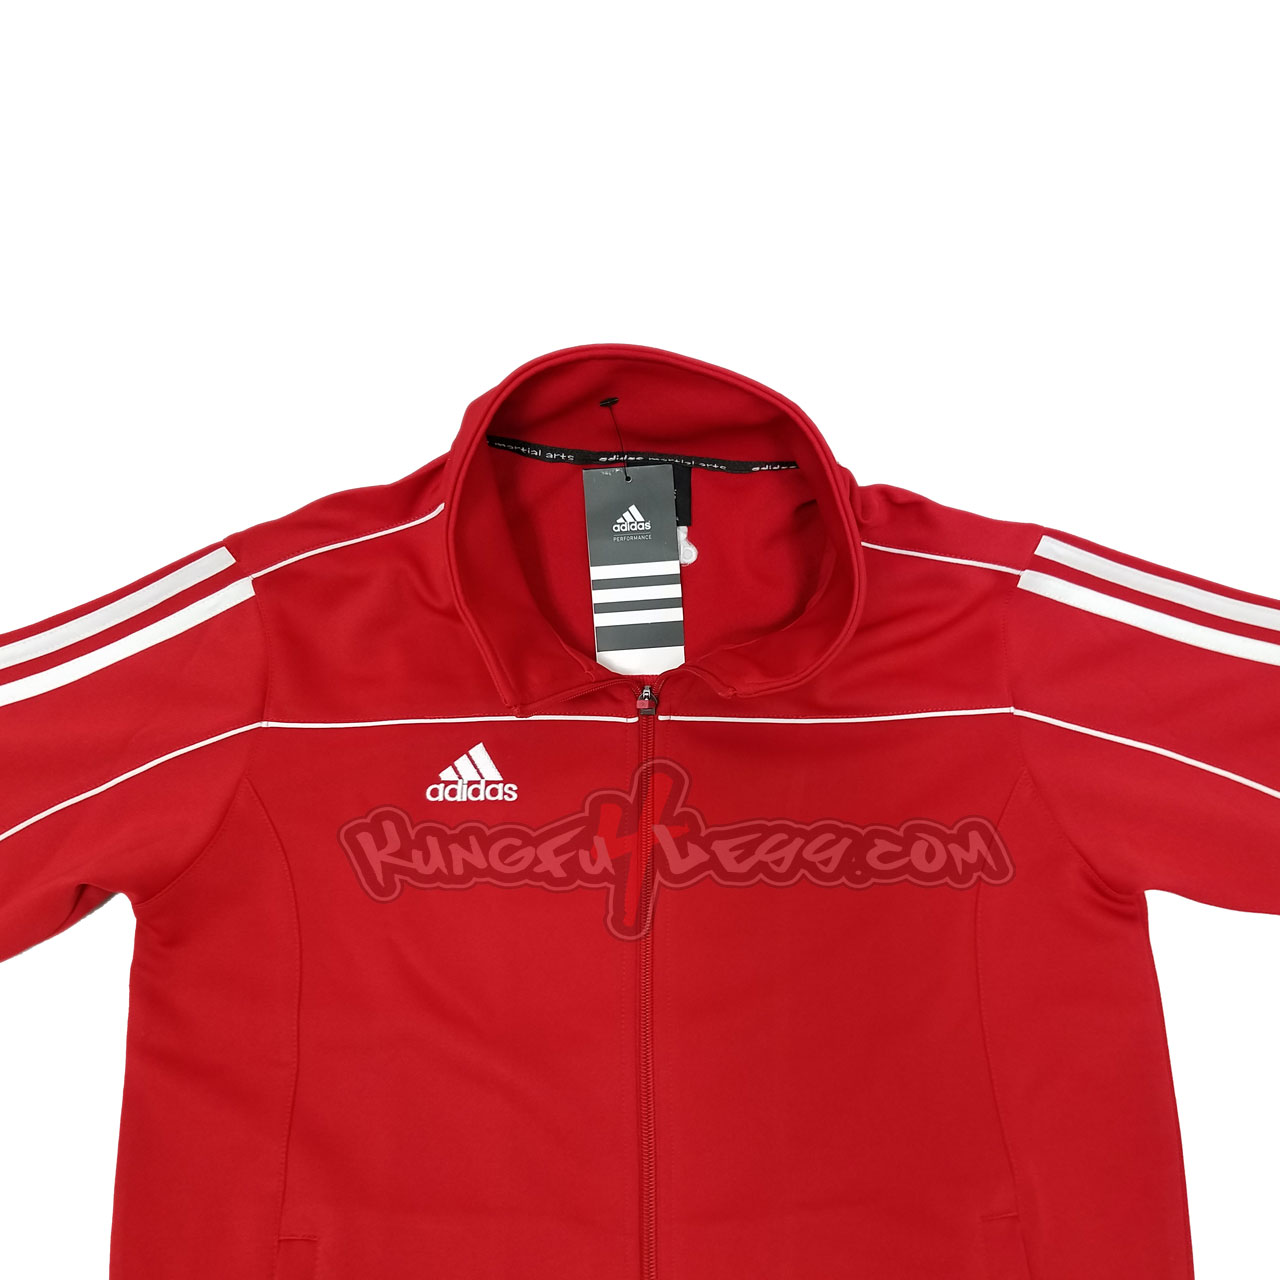 ADIDAS TRACK SUIT JACKET RED on sale only  44.95 fa8f149dd8b9